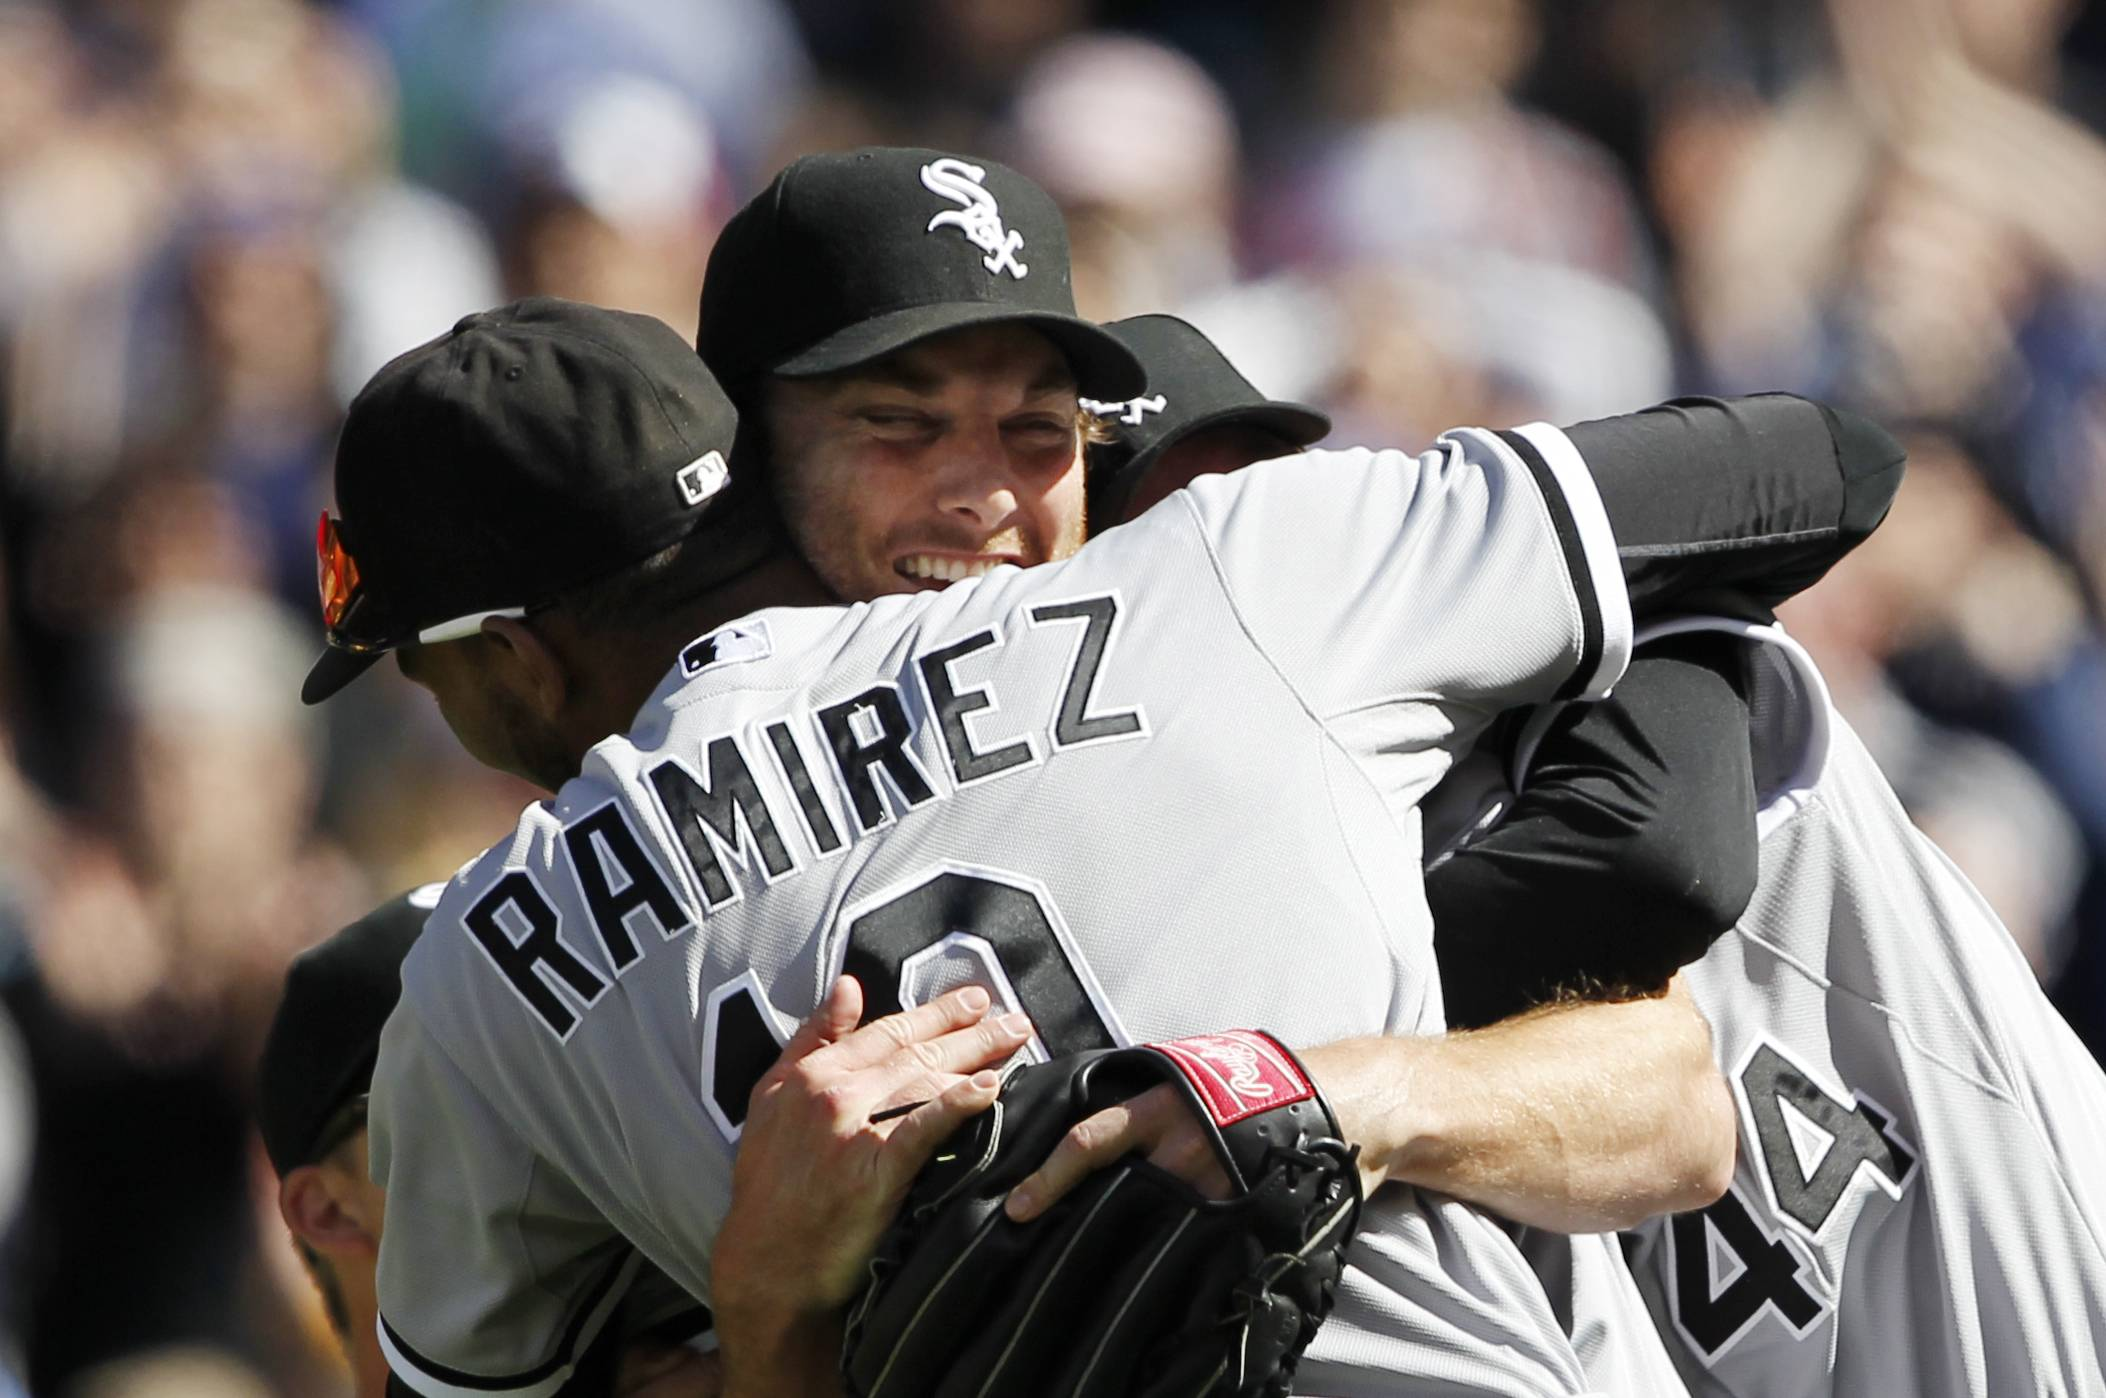 White Sox starting pitcher Philip Humber, center, is mobbed by teammates after pitching a perfect baseball game Saturday against the Seattle Mariners in Seattle. The White Sox won 4-0.